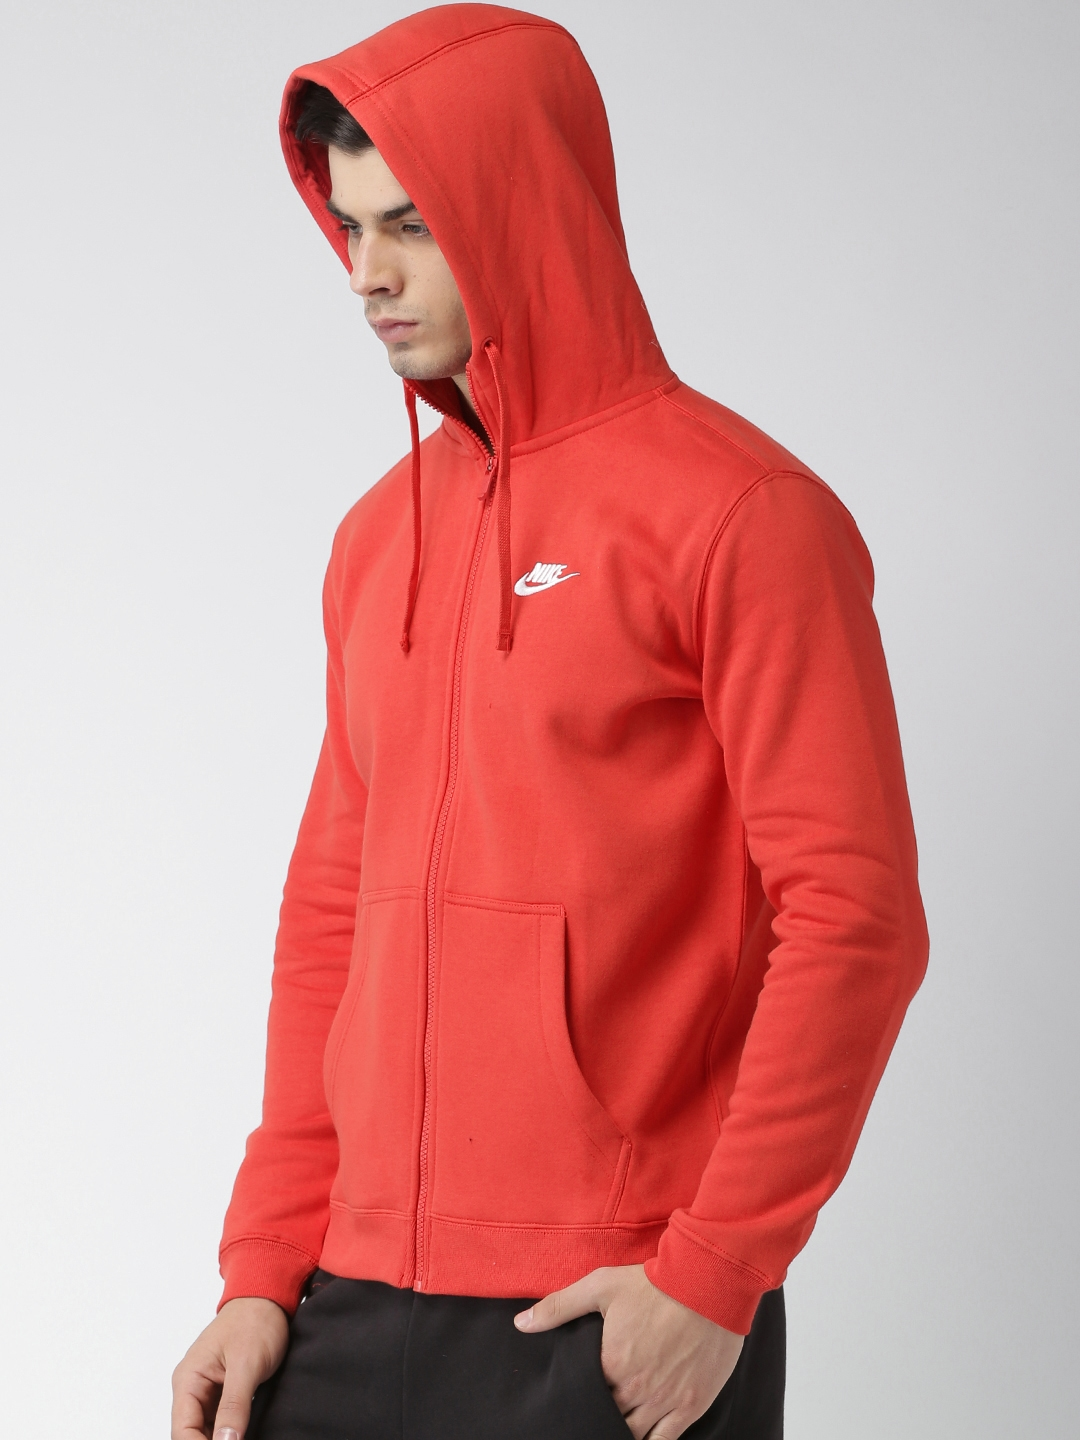 Buy Nike Men Red Solid Hooded Sweatshirt - Sweatshirts for Men ... a730f3877d